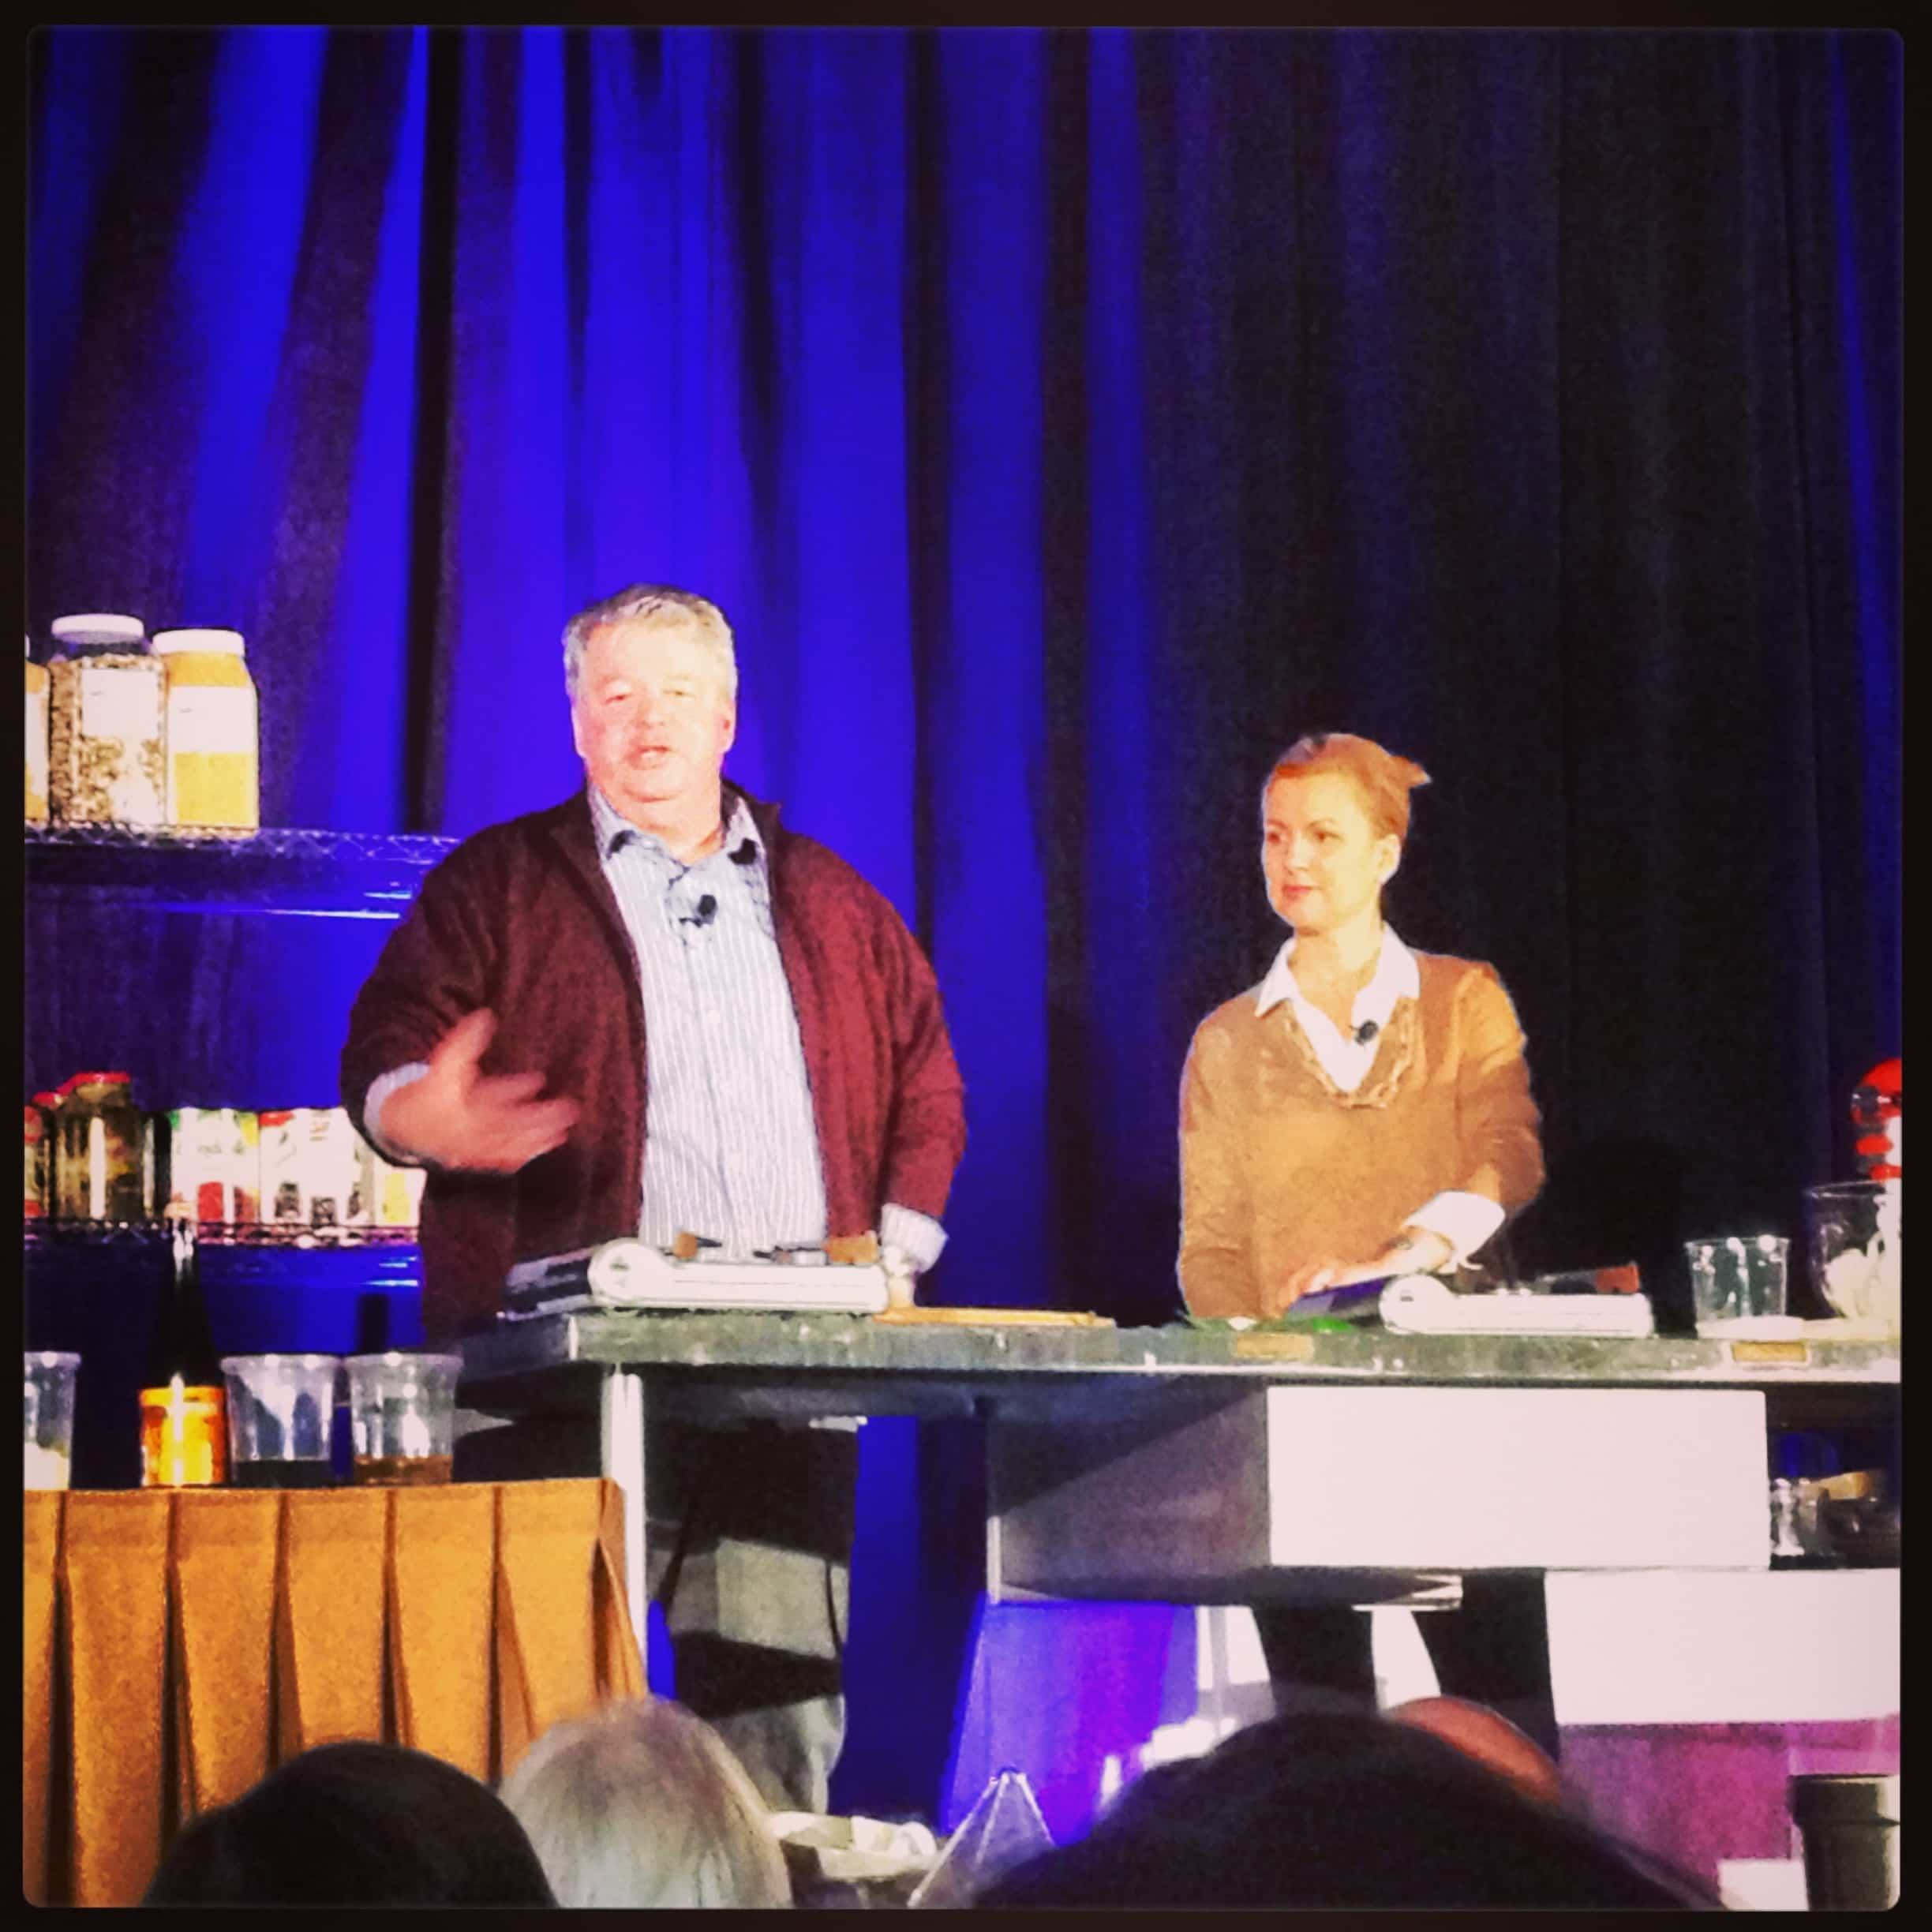 Chefs Michael and Anna Olson cooking demonstration